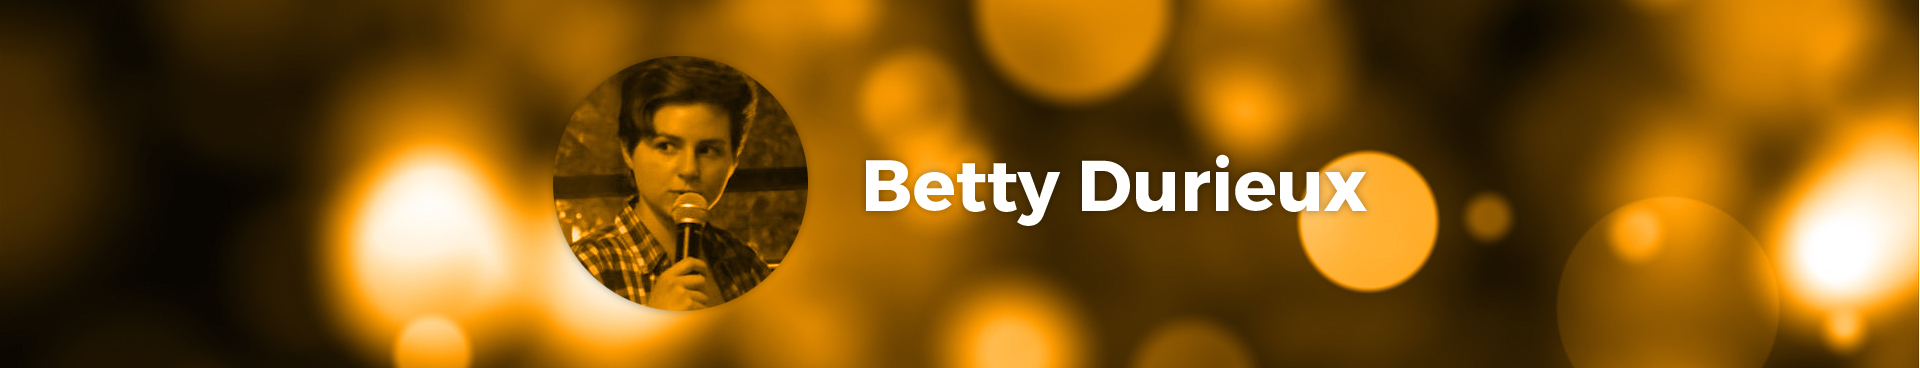 Betty Durieux, artiste Le Spot du Rire